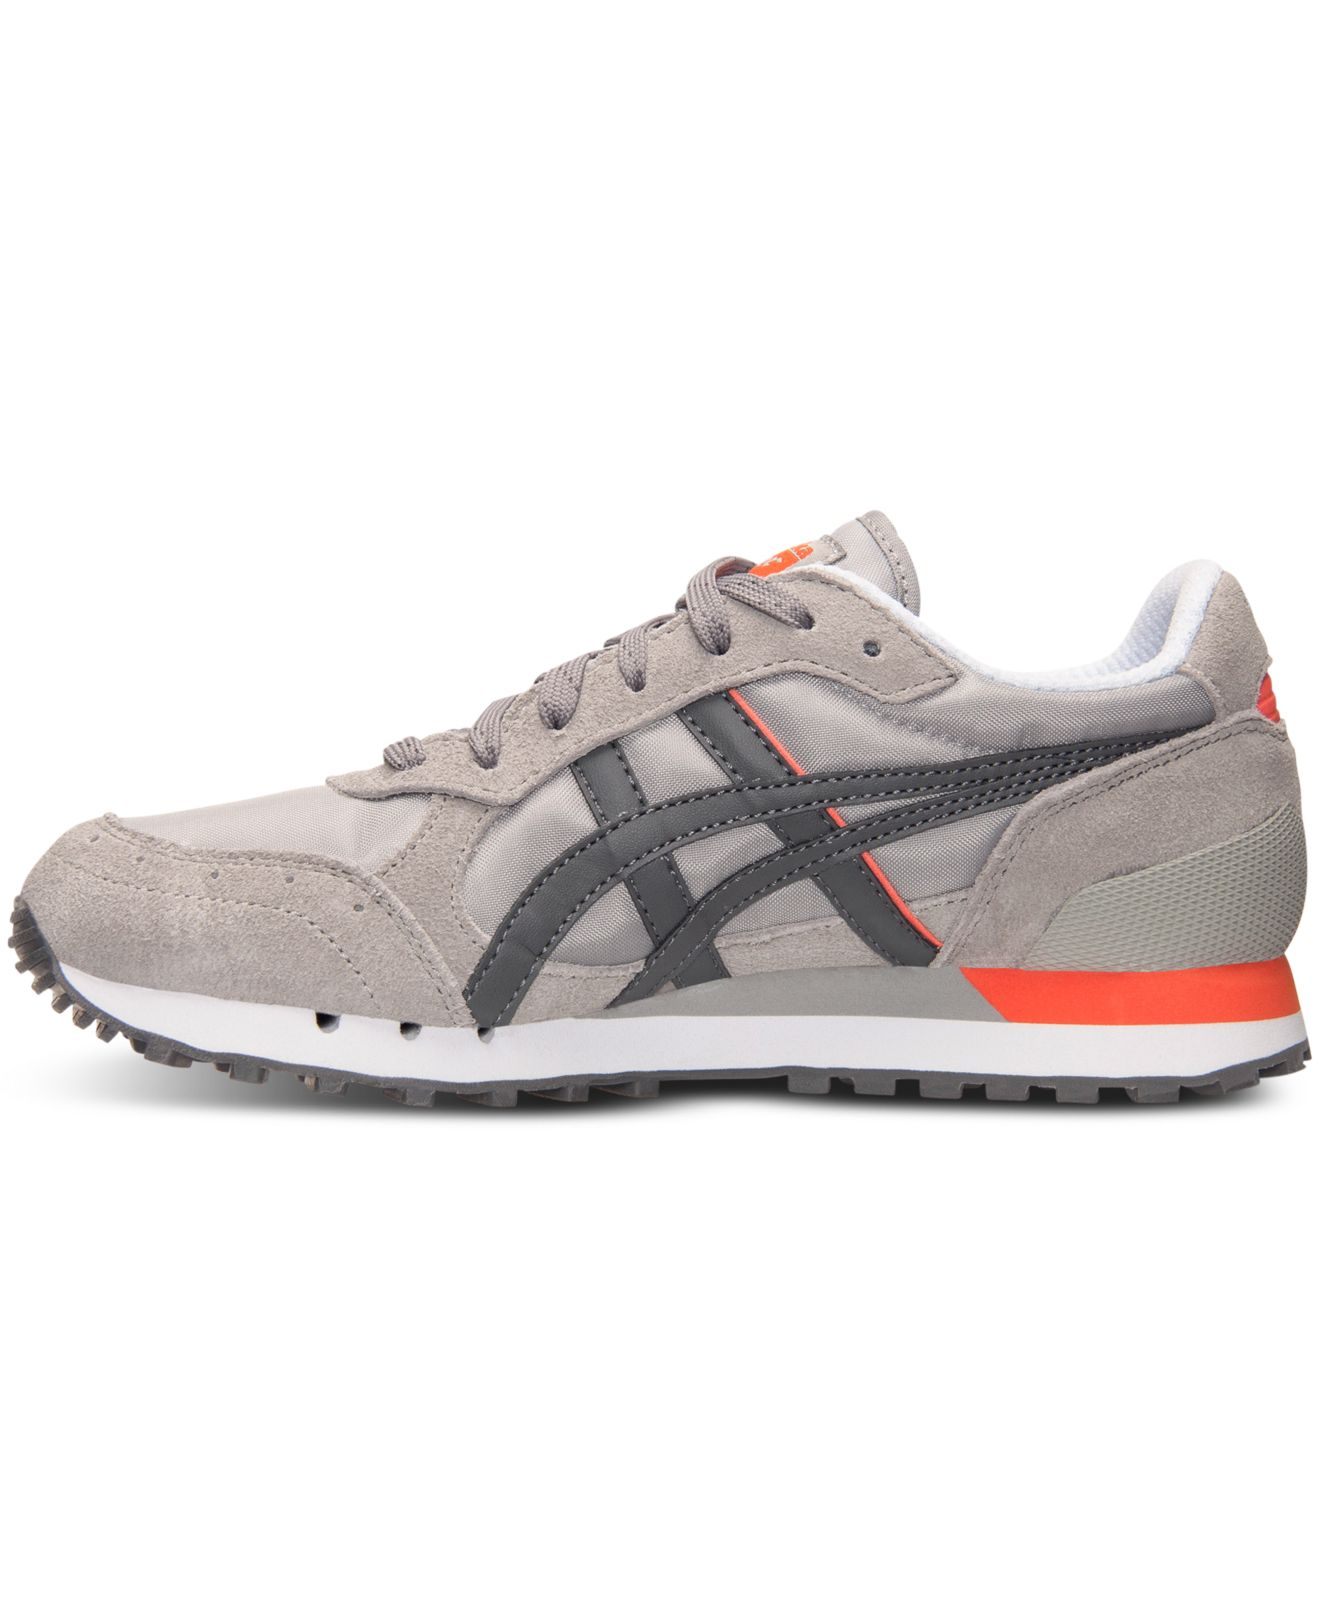 Asics Women's Onitsuka Tiger Colorado 85 Casual Sneakers